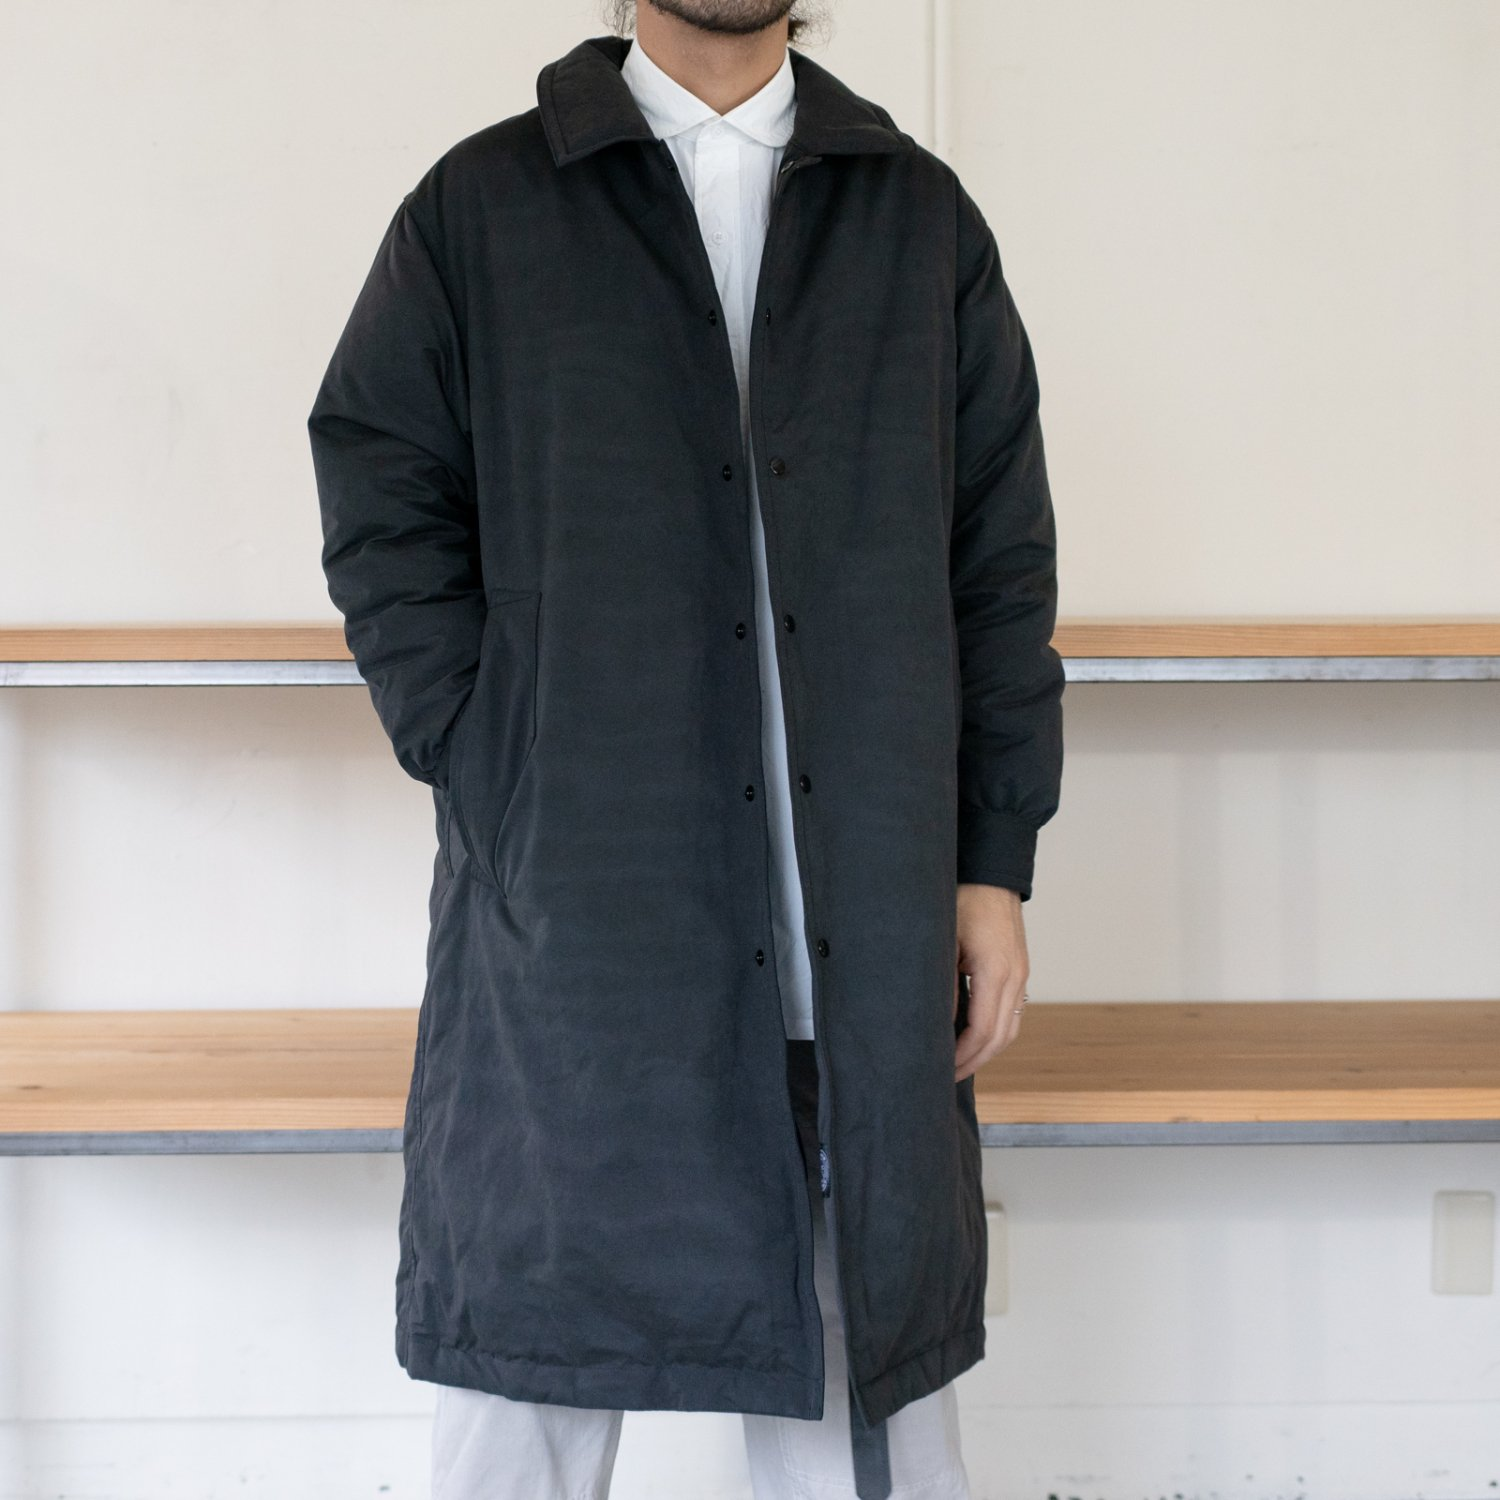 Porter Classic * WEATHER DOWN COAT * Black